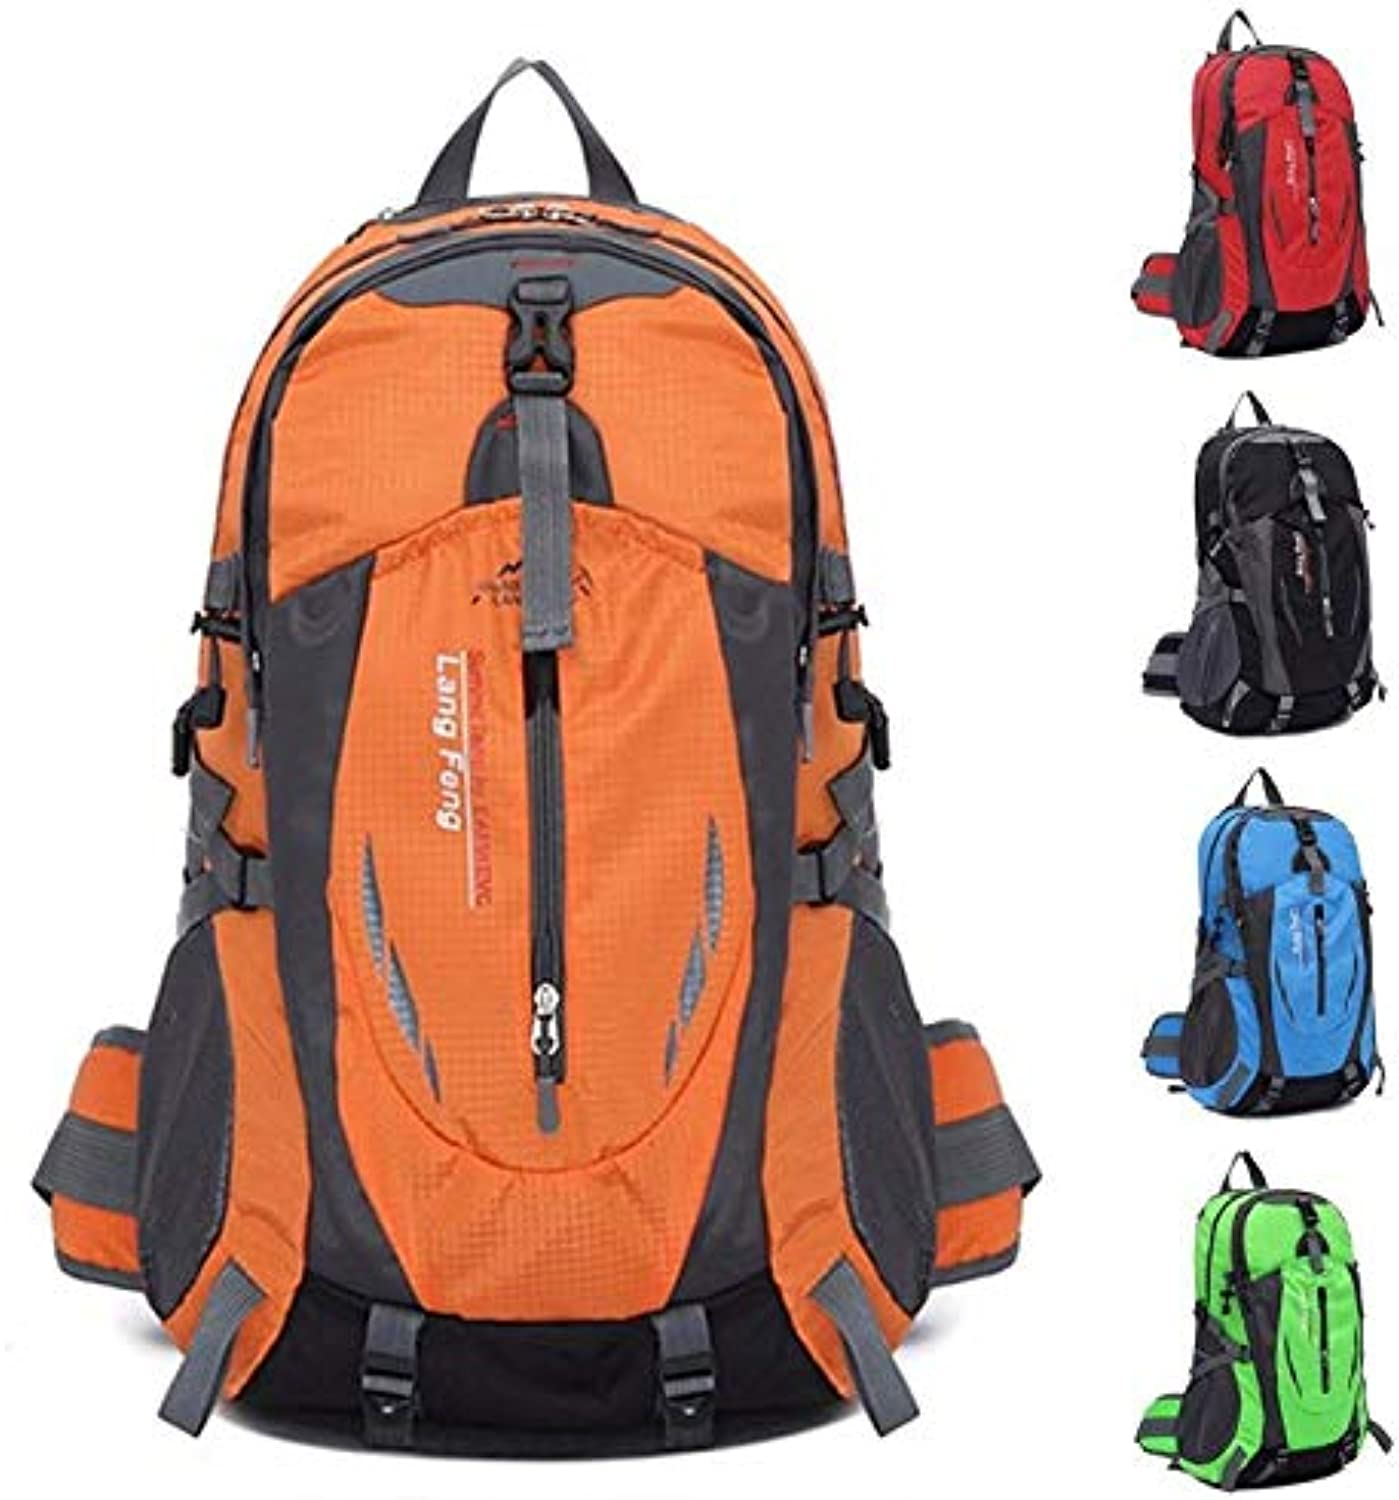 Anddod S-58203 Hiking Bag 35L Sports Backpack Casual Travel Bags Multiple Farbes